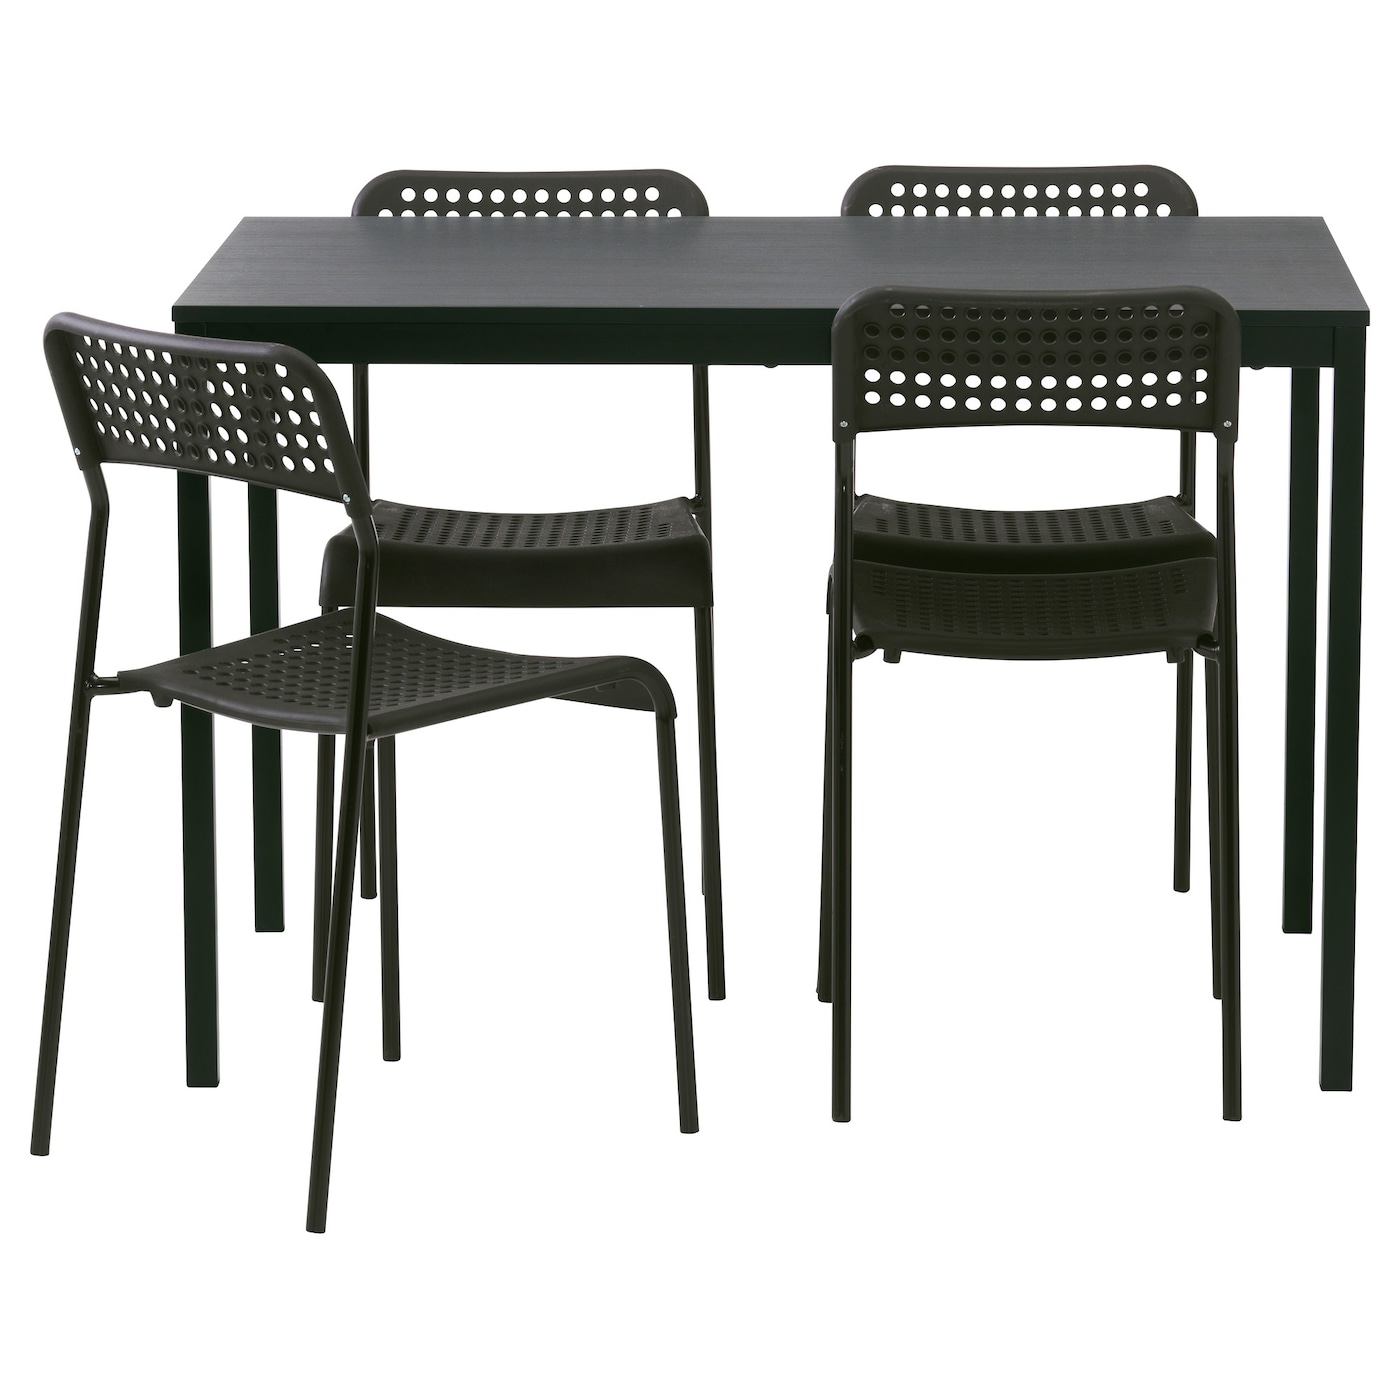 Awesome IKEA TÄRENDÖ/ADDE Table And 4 Chairs